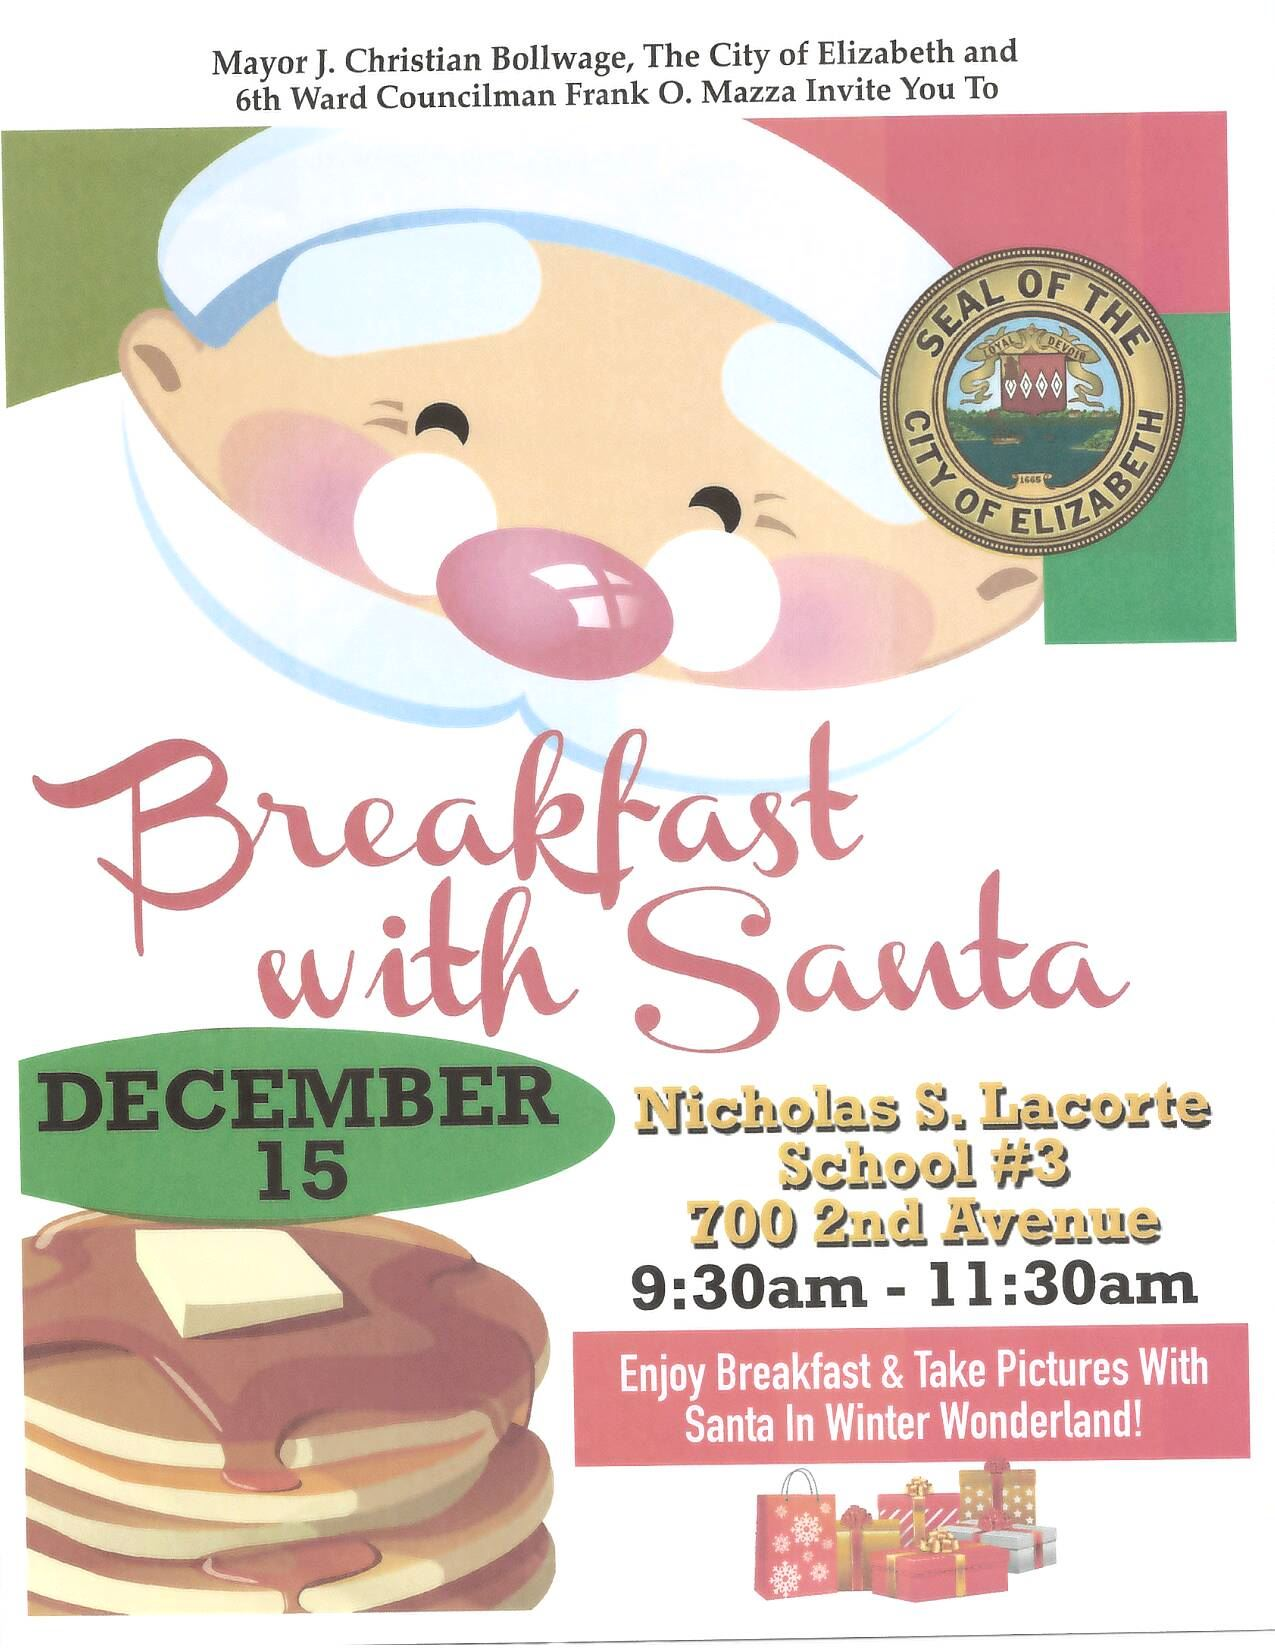 Breakfast with Santa at School 3